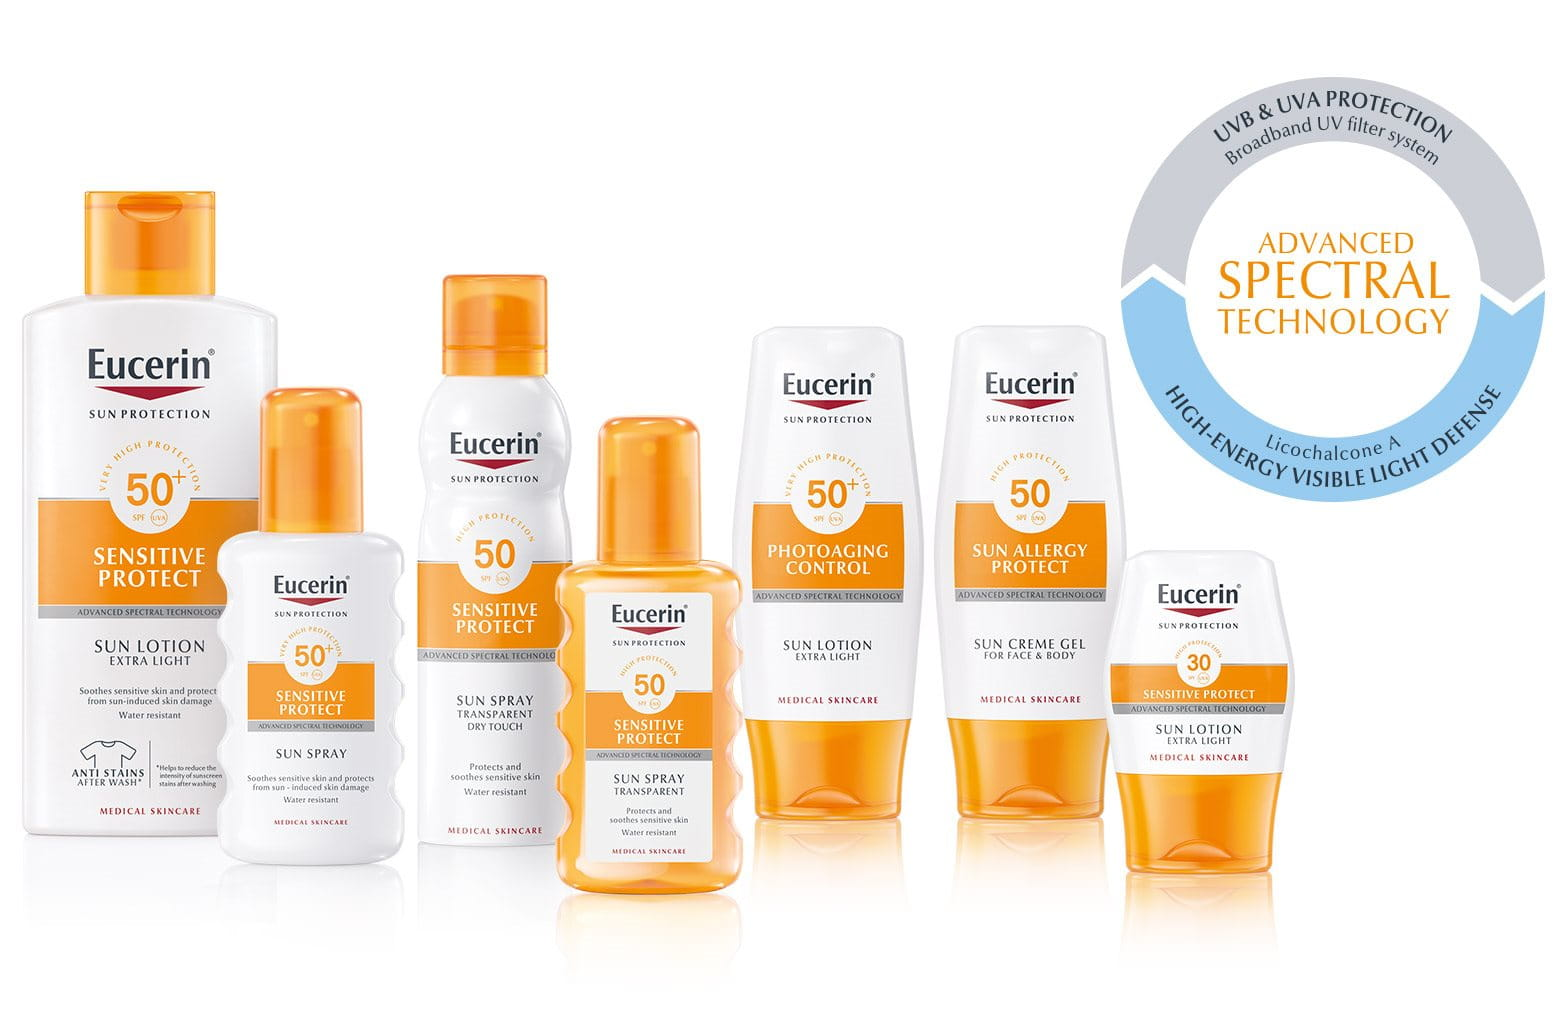 Superior sun protection from Eucerin